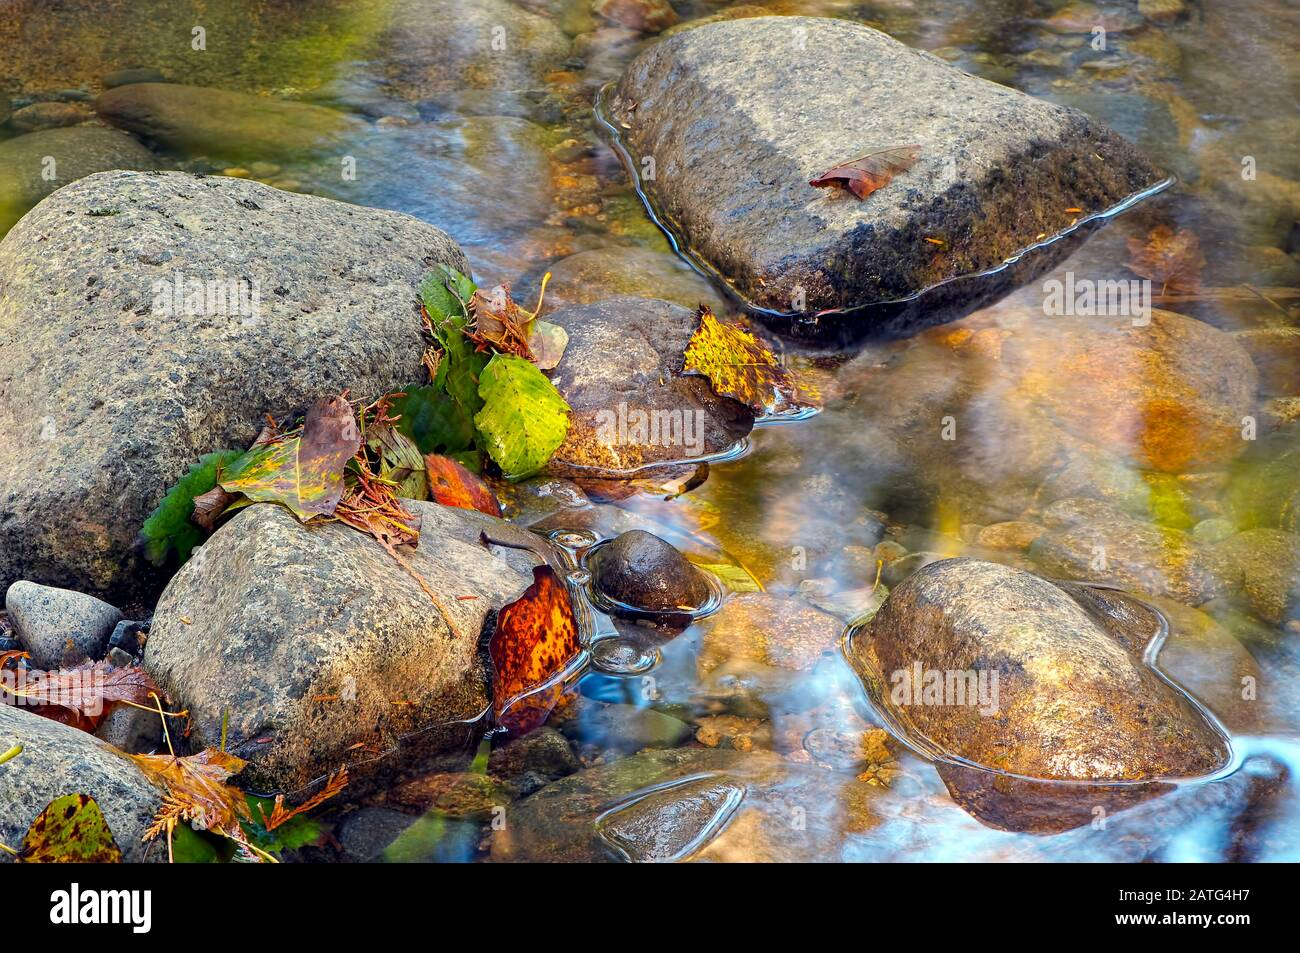 colourful-fallen-leaves-and-needles-on-rocks-in-a-creek-2ATG4H7.jpg